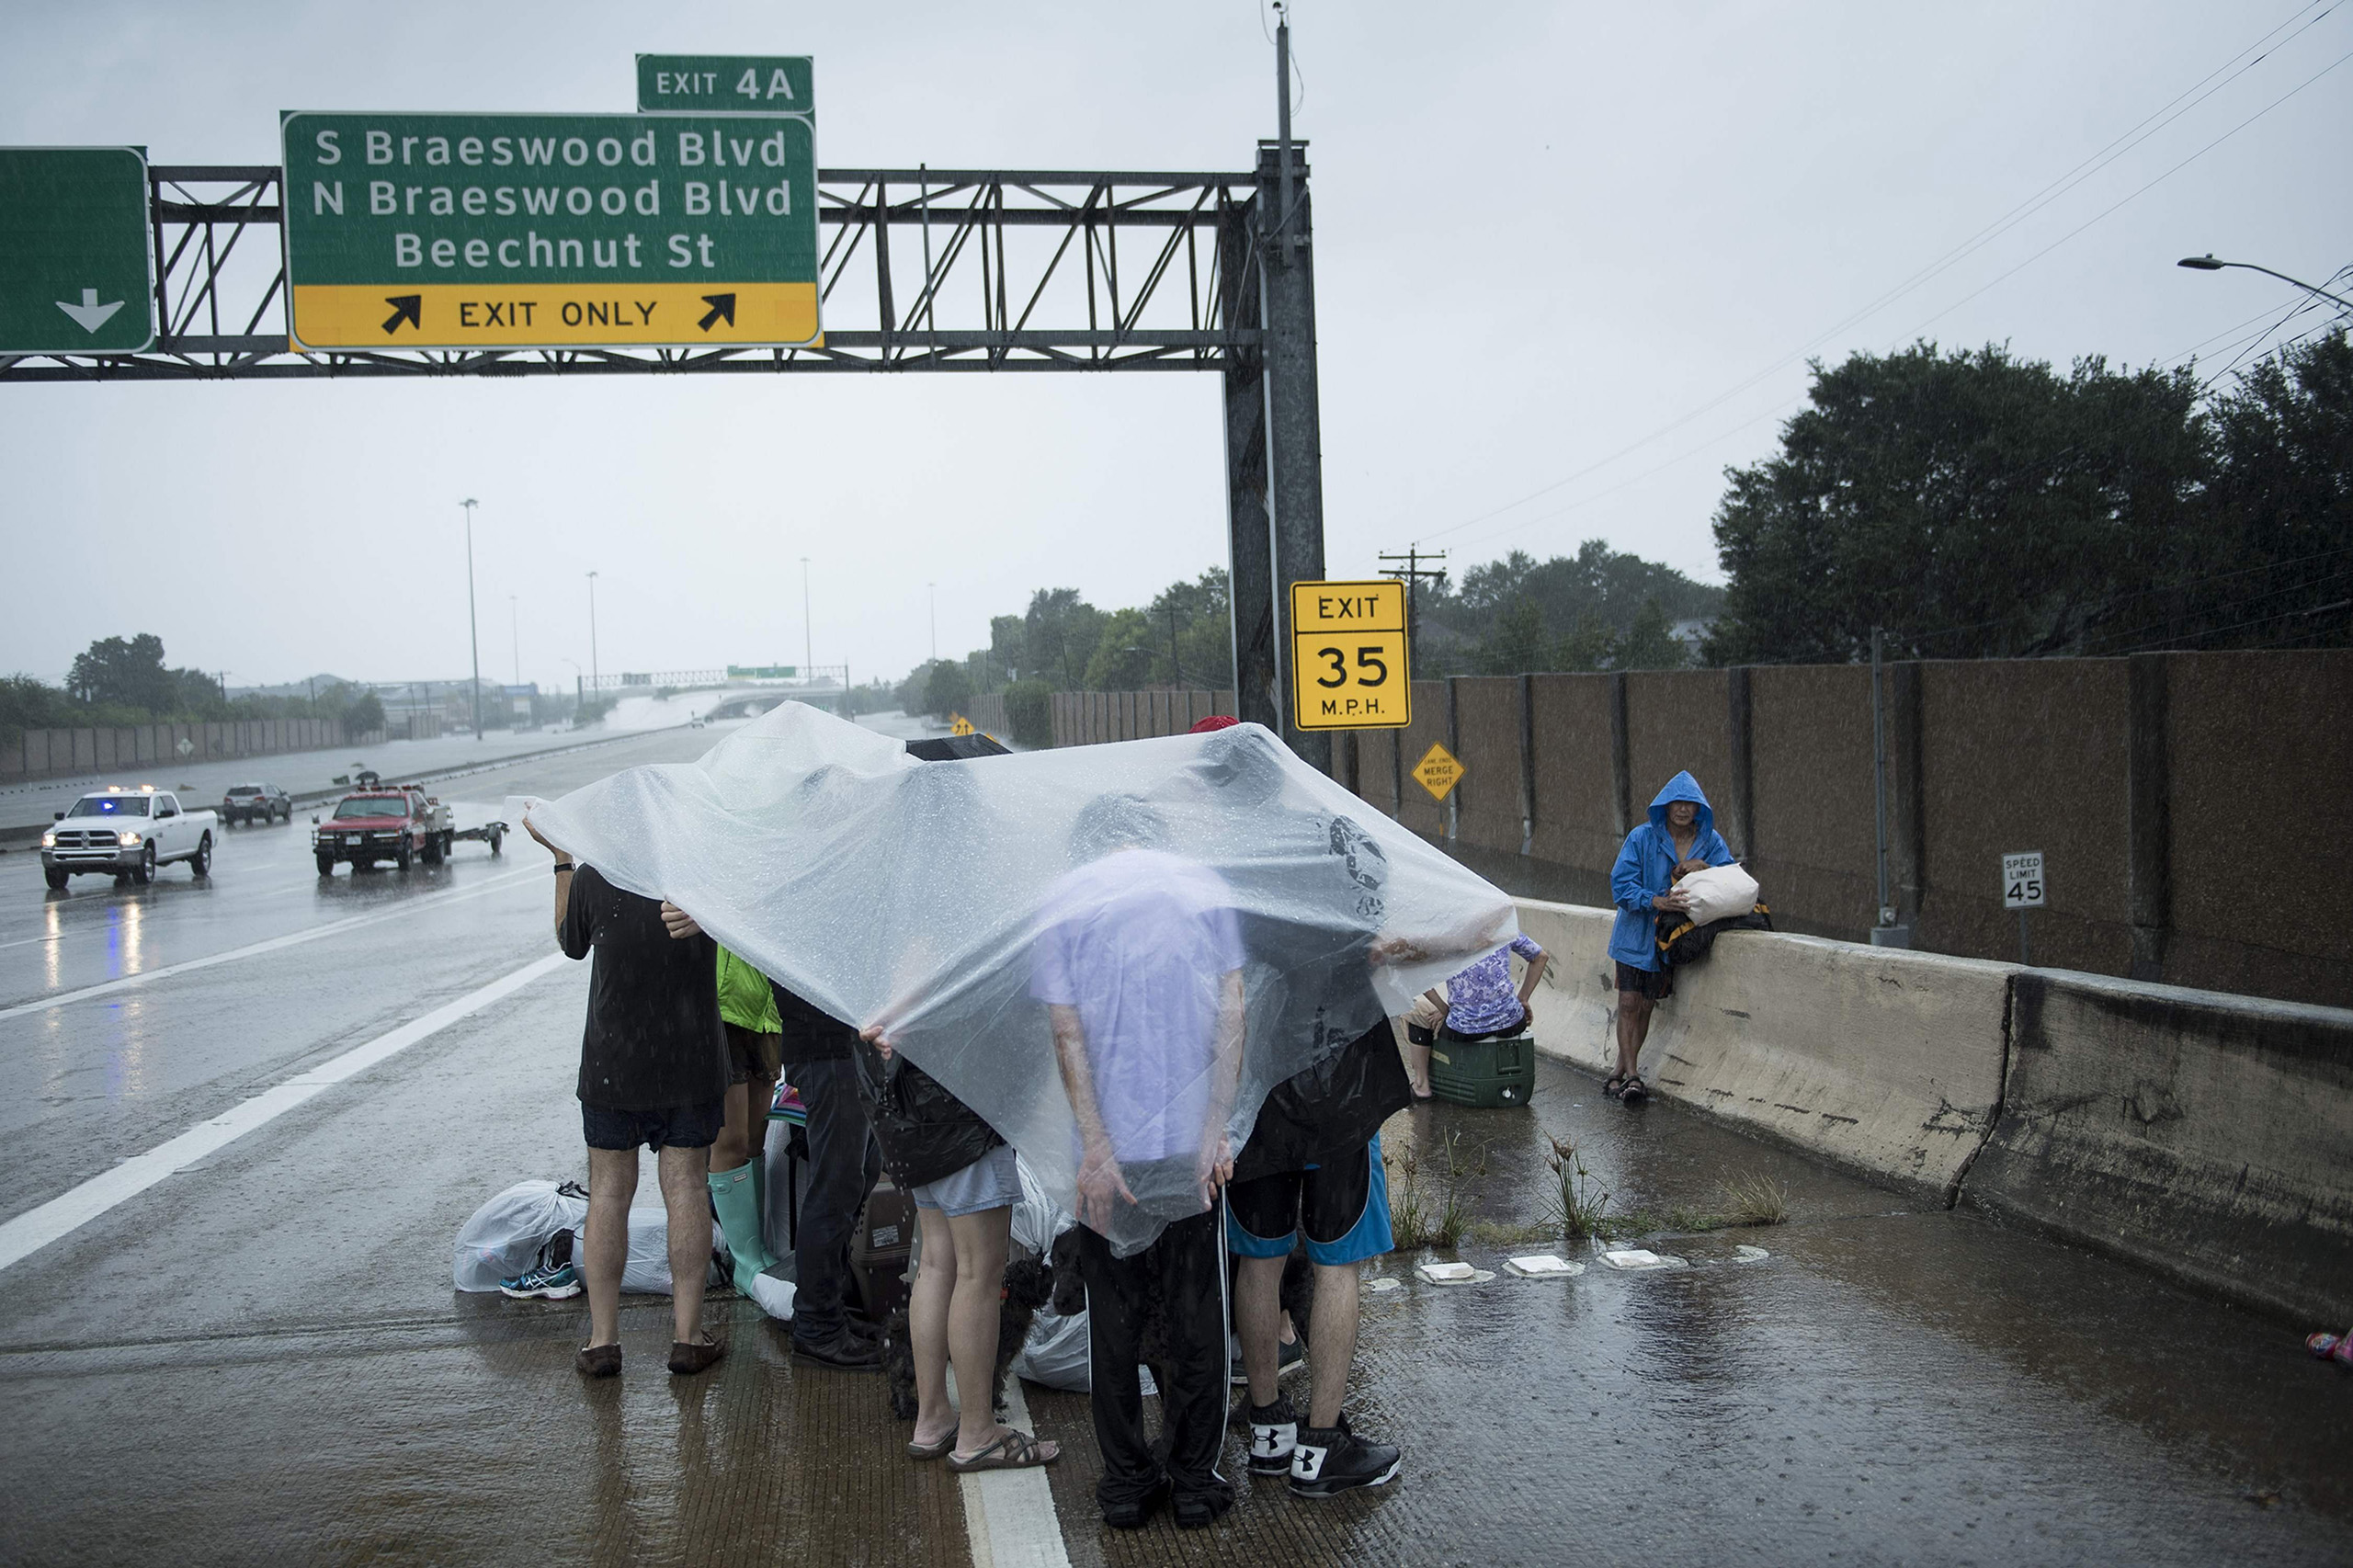 Evacuation residents from the Meyerland wait on an I-610 overpass for further help during the aftermath of Hurricane Harvey Aug. 27, 2017 in Houston.